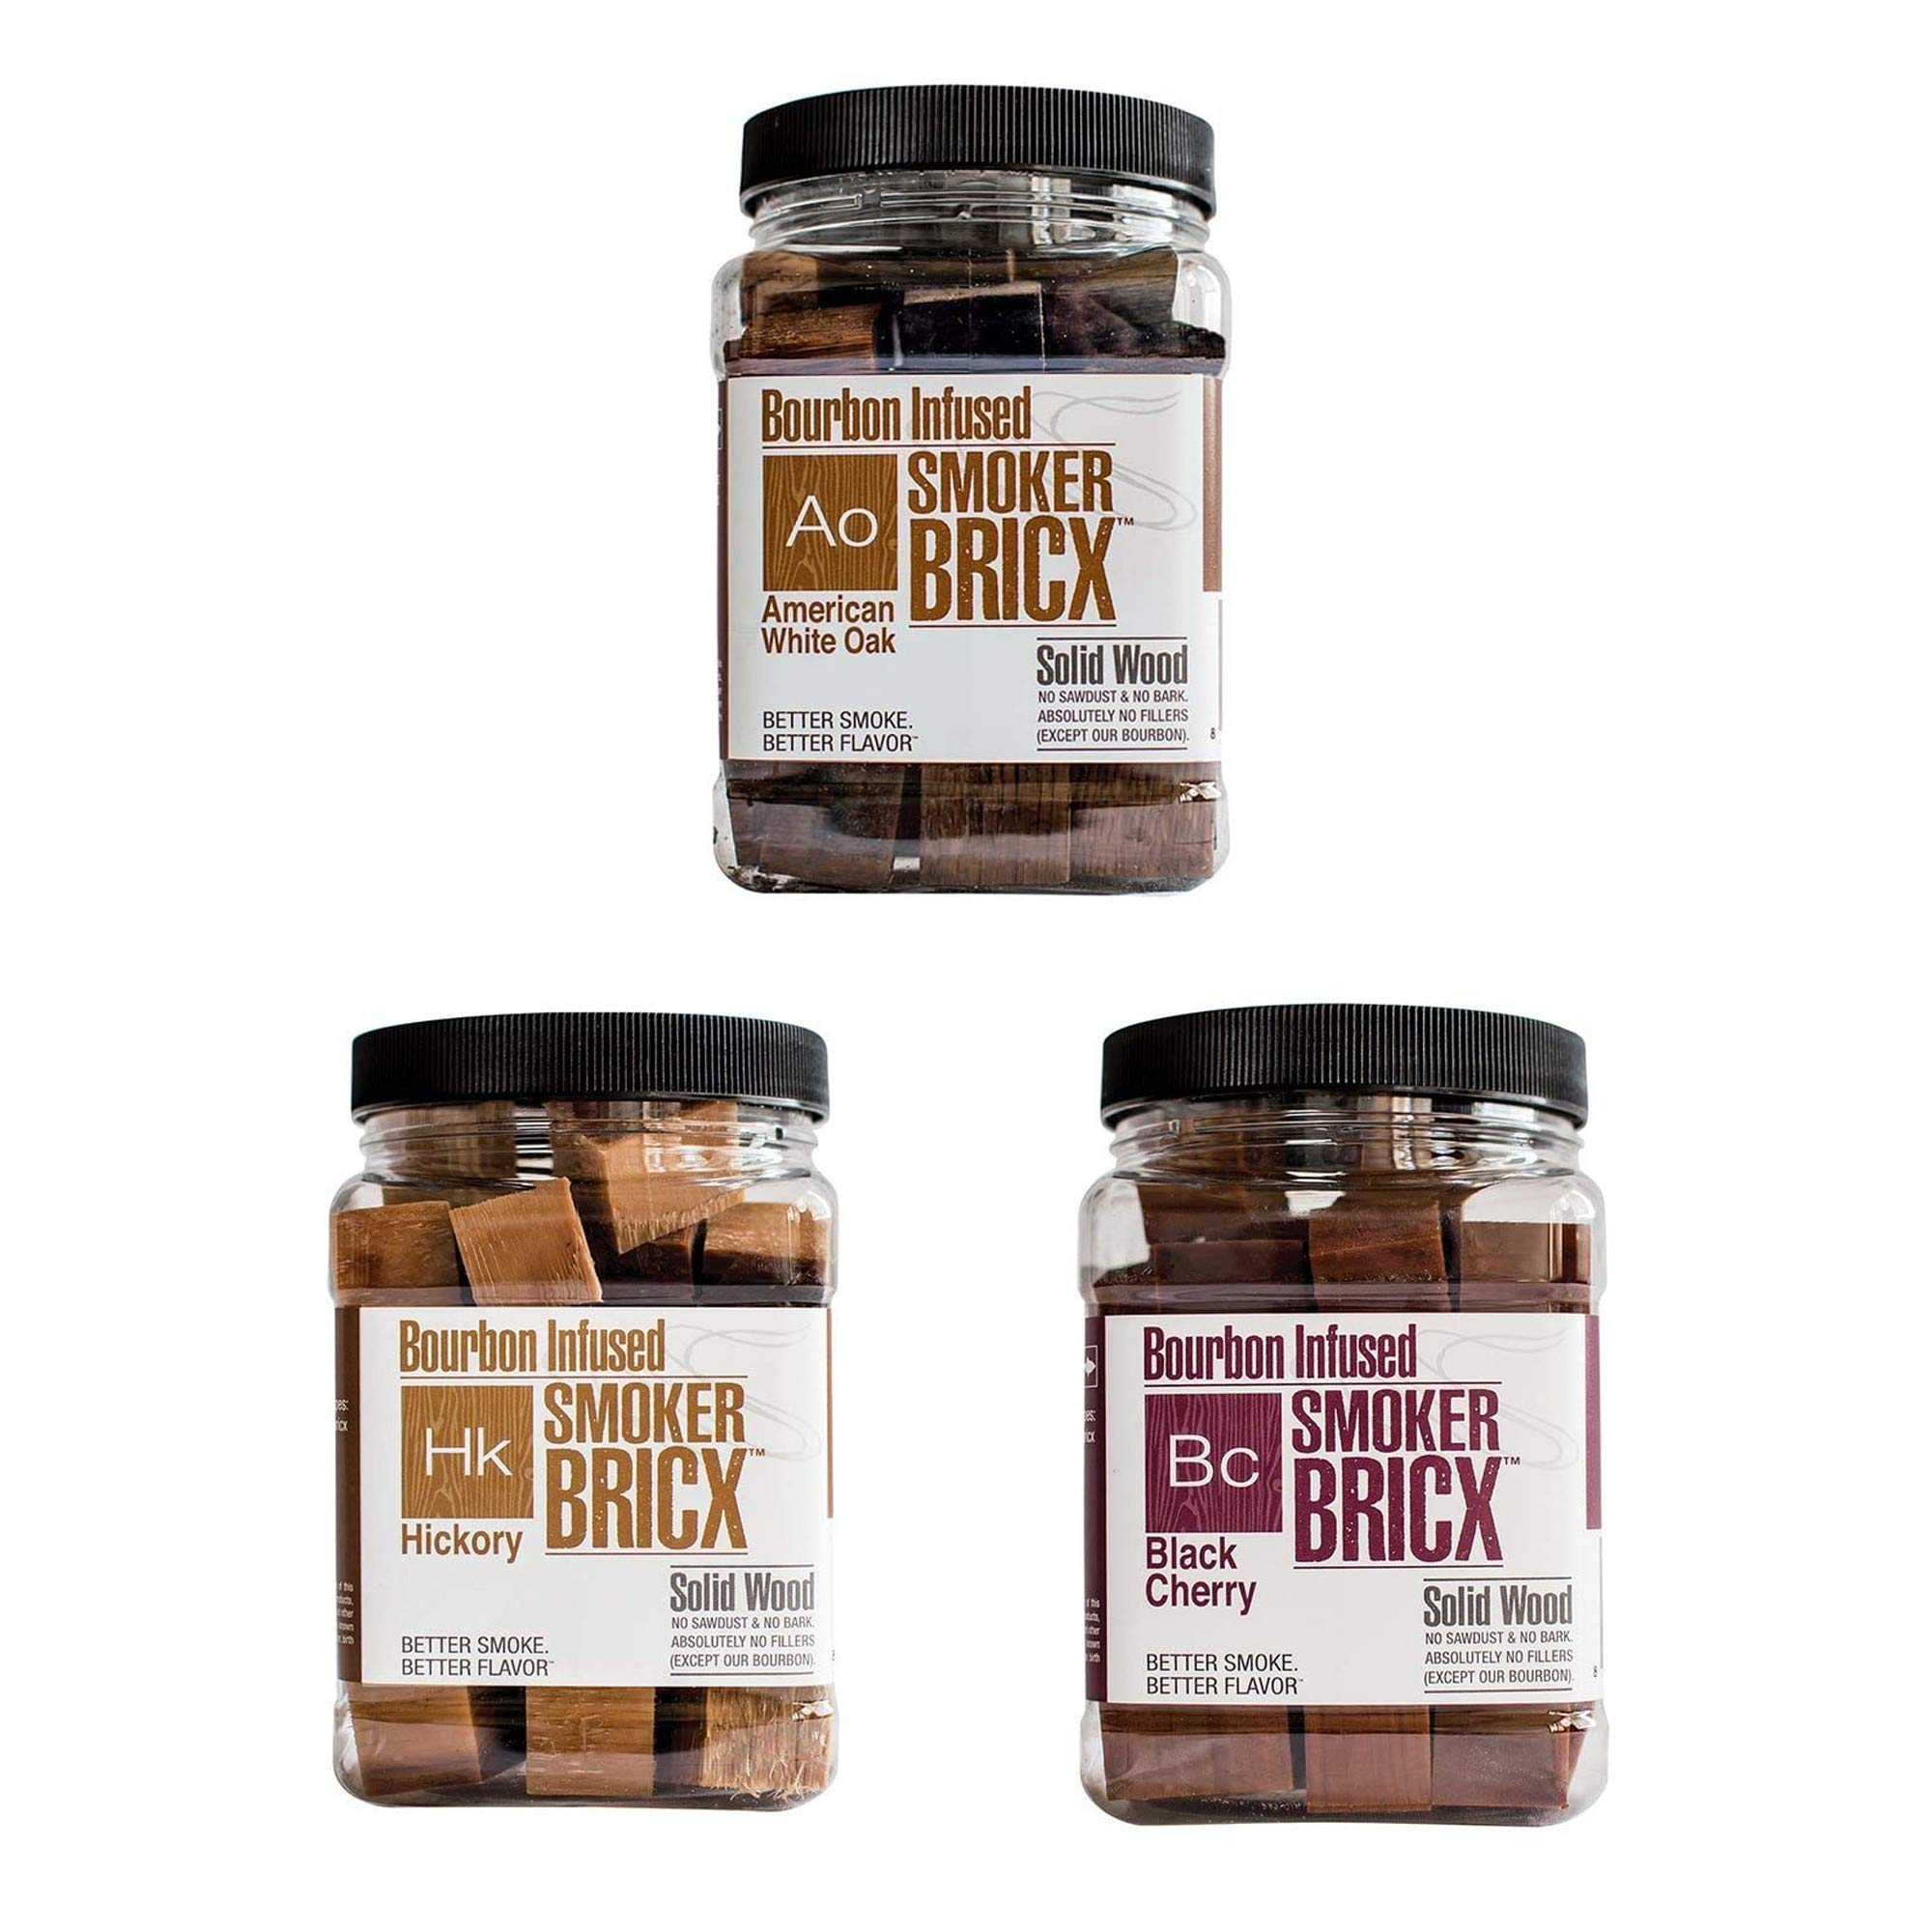 Smoker Bricx Bourbon Infused BBQ Smoking Chunks 32oz, 3 Pack - American Oak, Black Cherry, and Hickory by Cleveland Whiskey